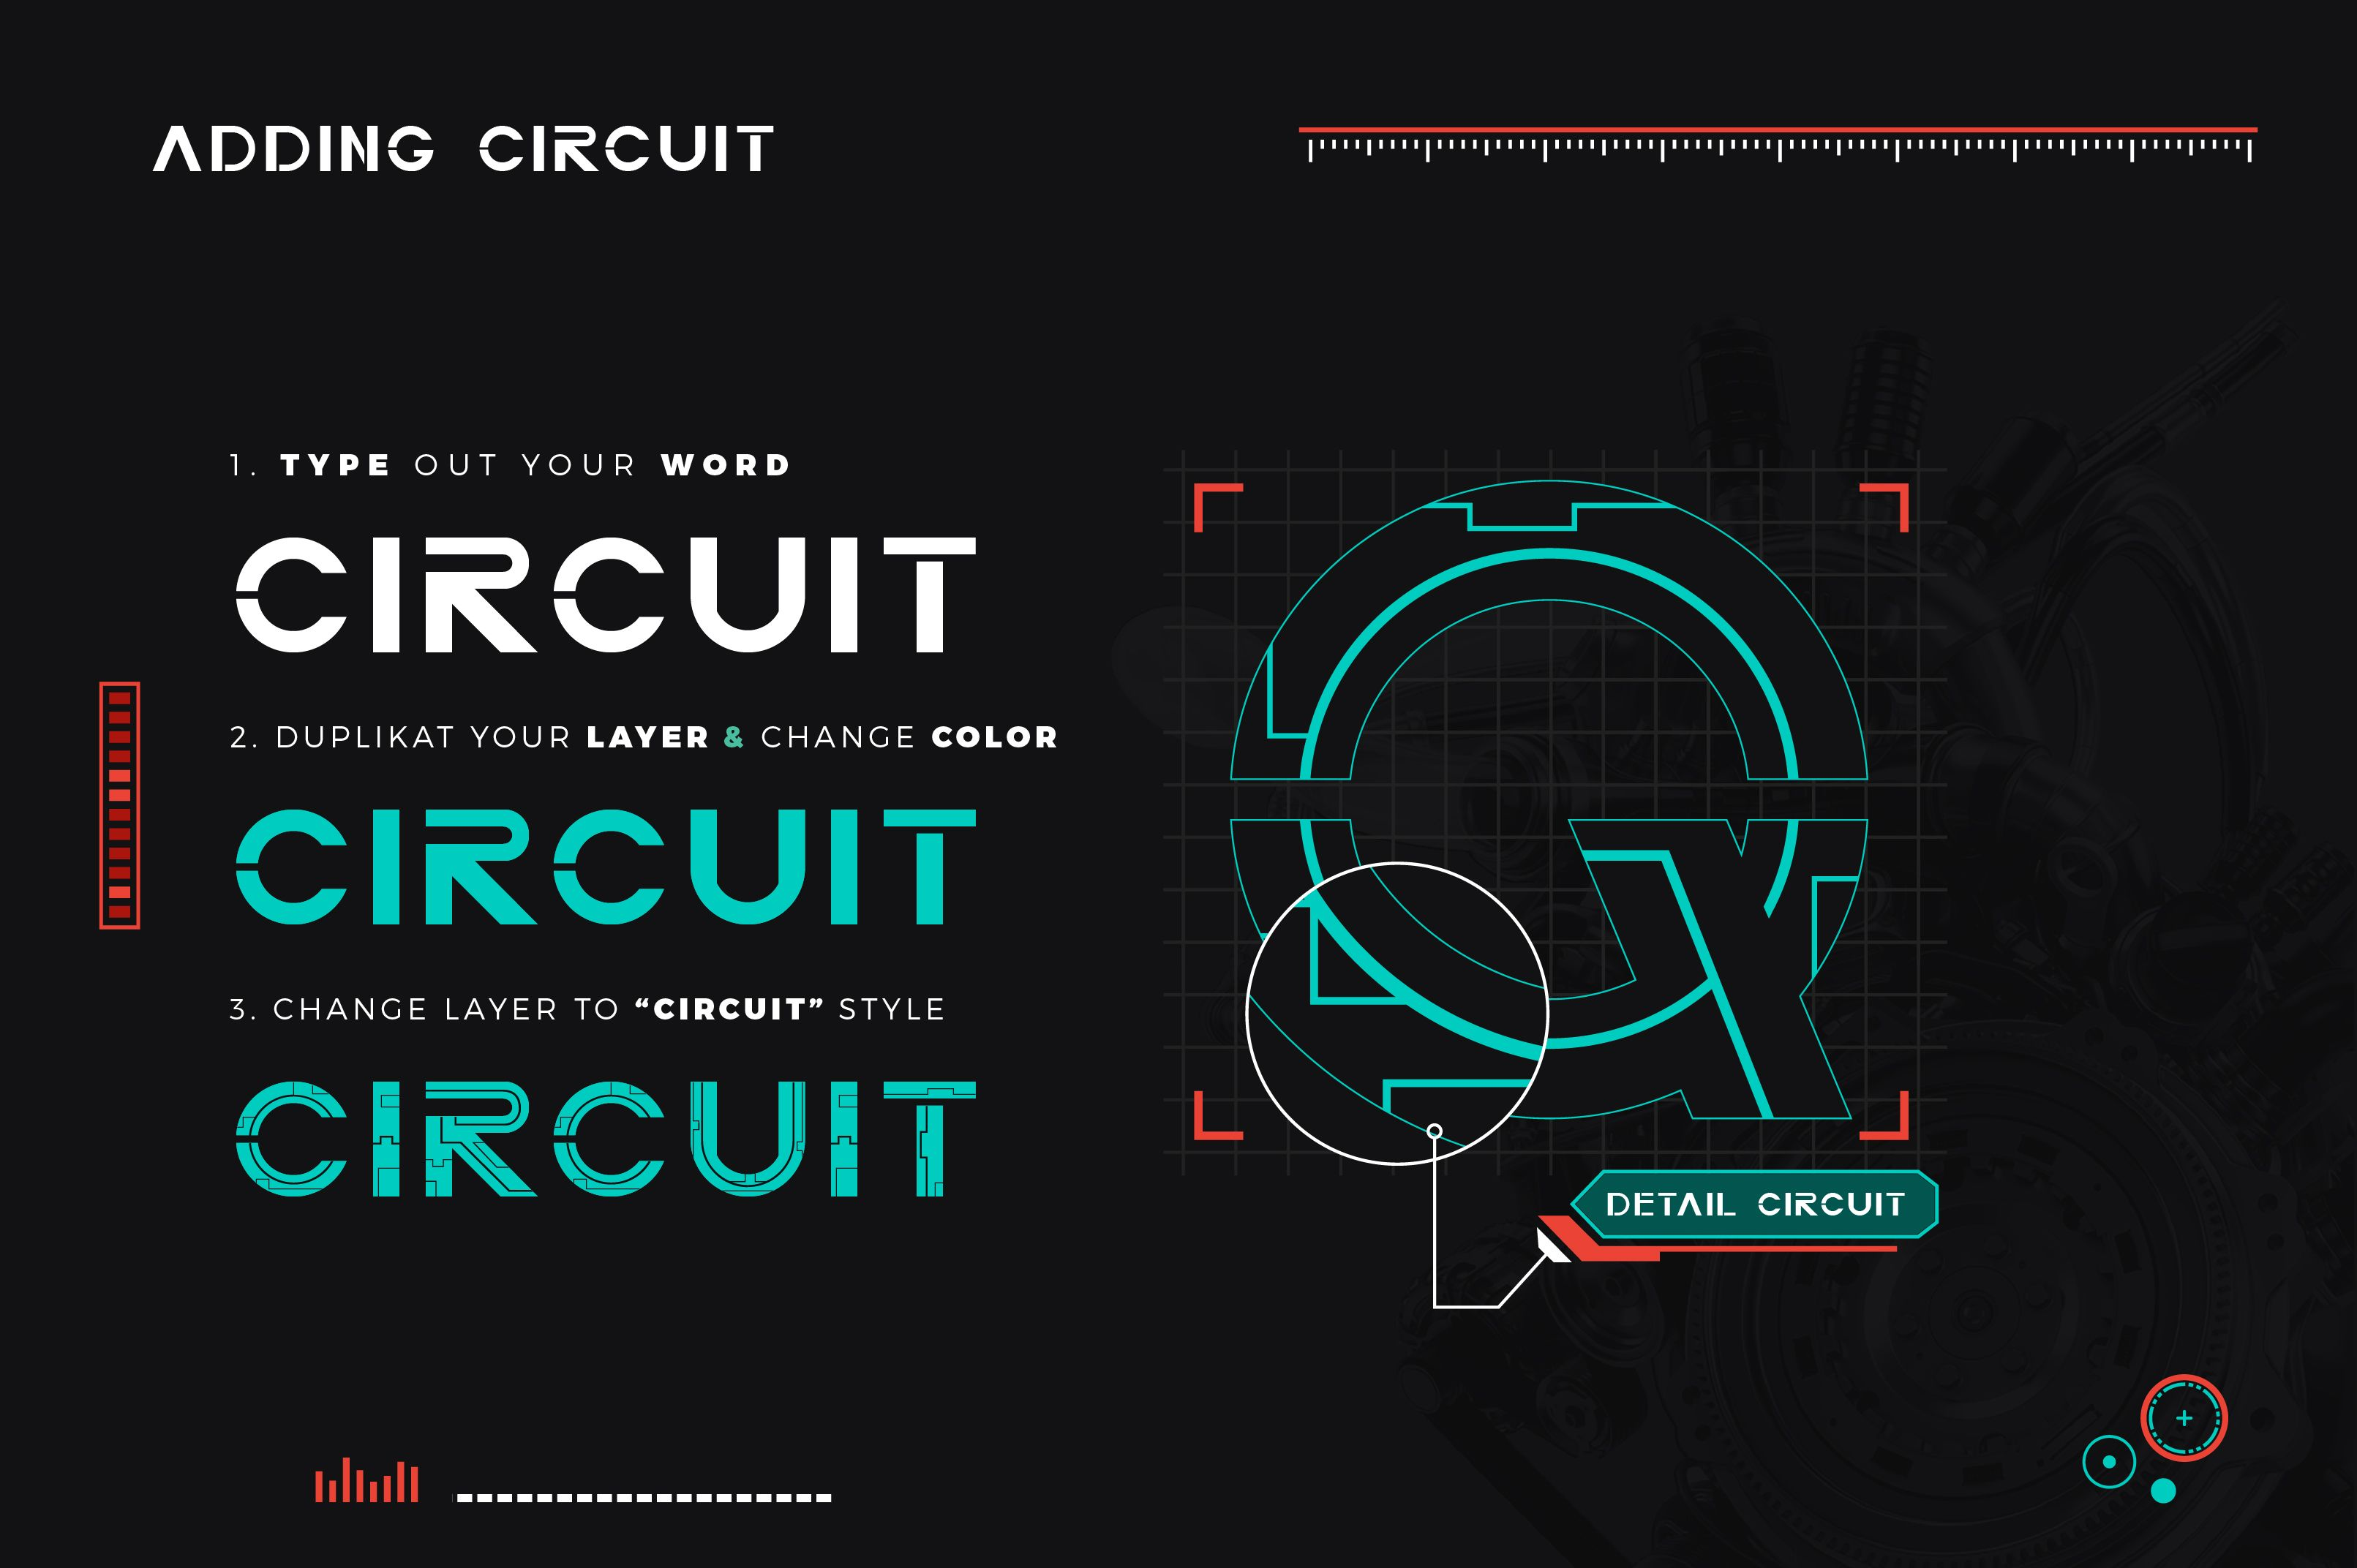 ASTRO CYBER DISPLAY FONT #CYBER, #ASTRO, #FONT, #DISPLAY